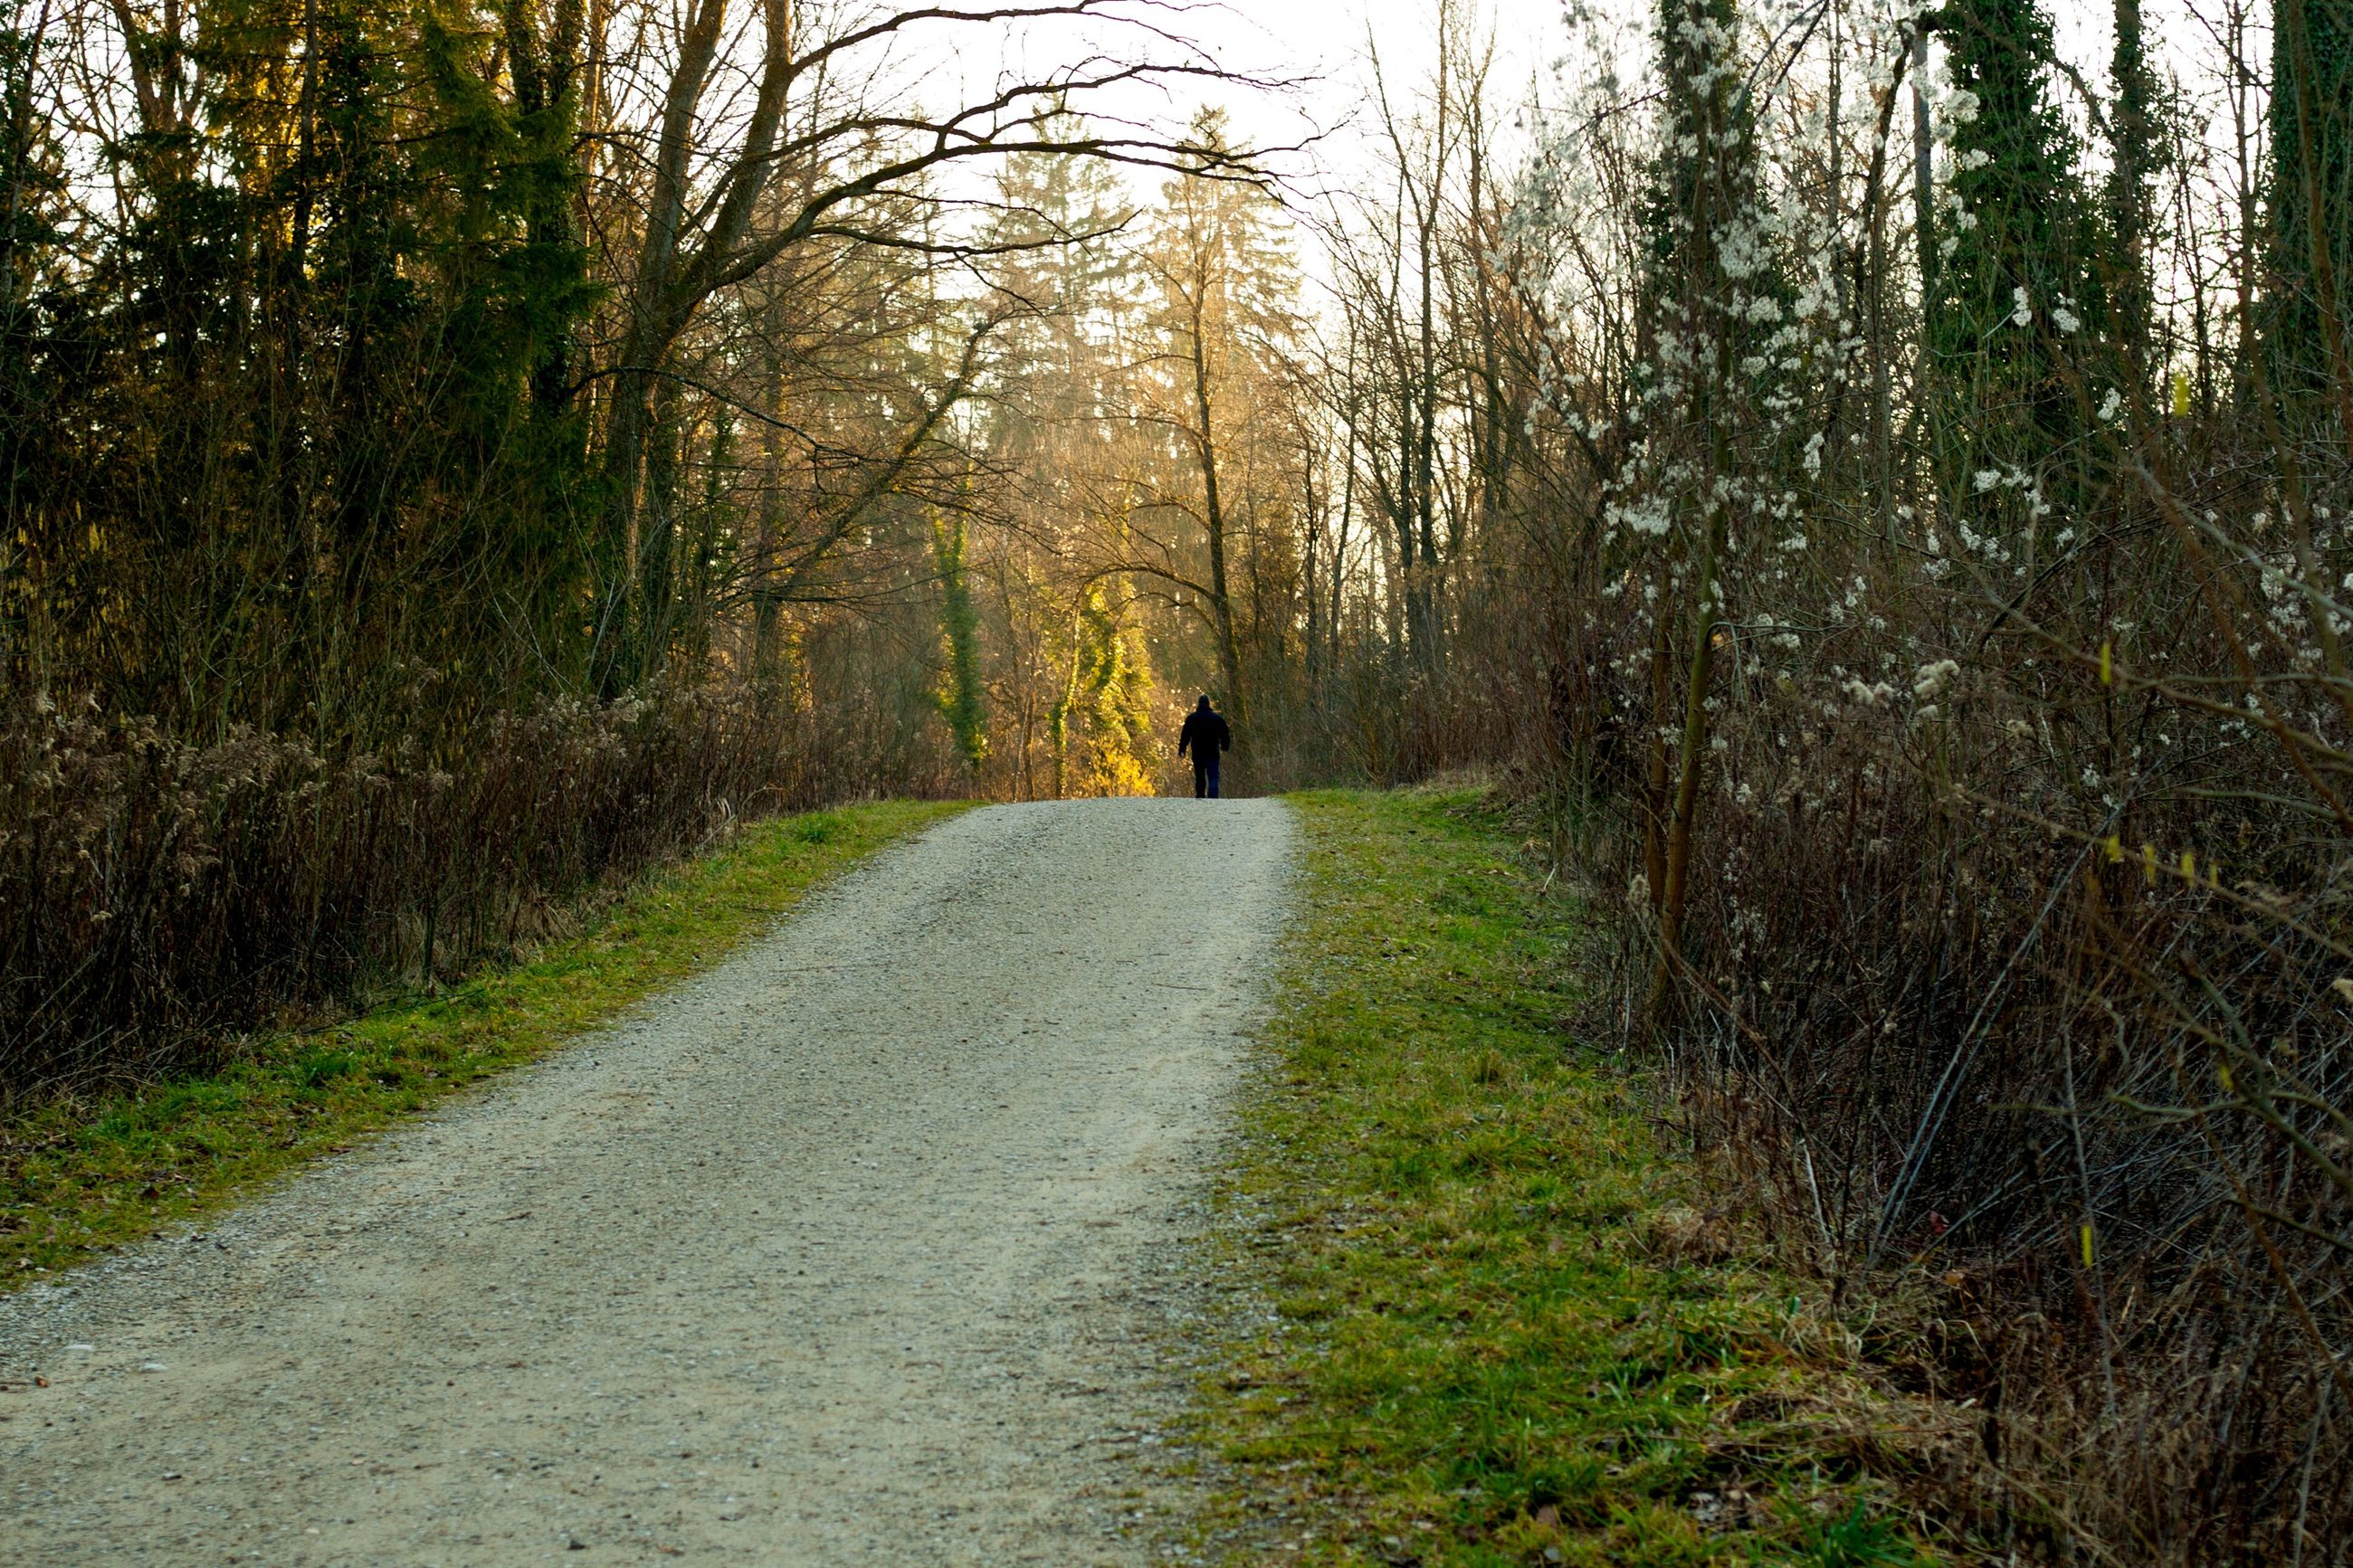 dog, road, one person, rear view, tree, one man only, the way forward, walking, full length, adventure, forest, single lane road, one animal, people, outdoors, adult, adults only, pets, nature, only men, day, grass, domestic animals, animal themes